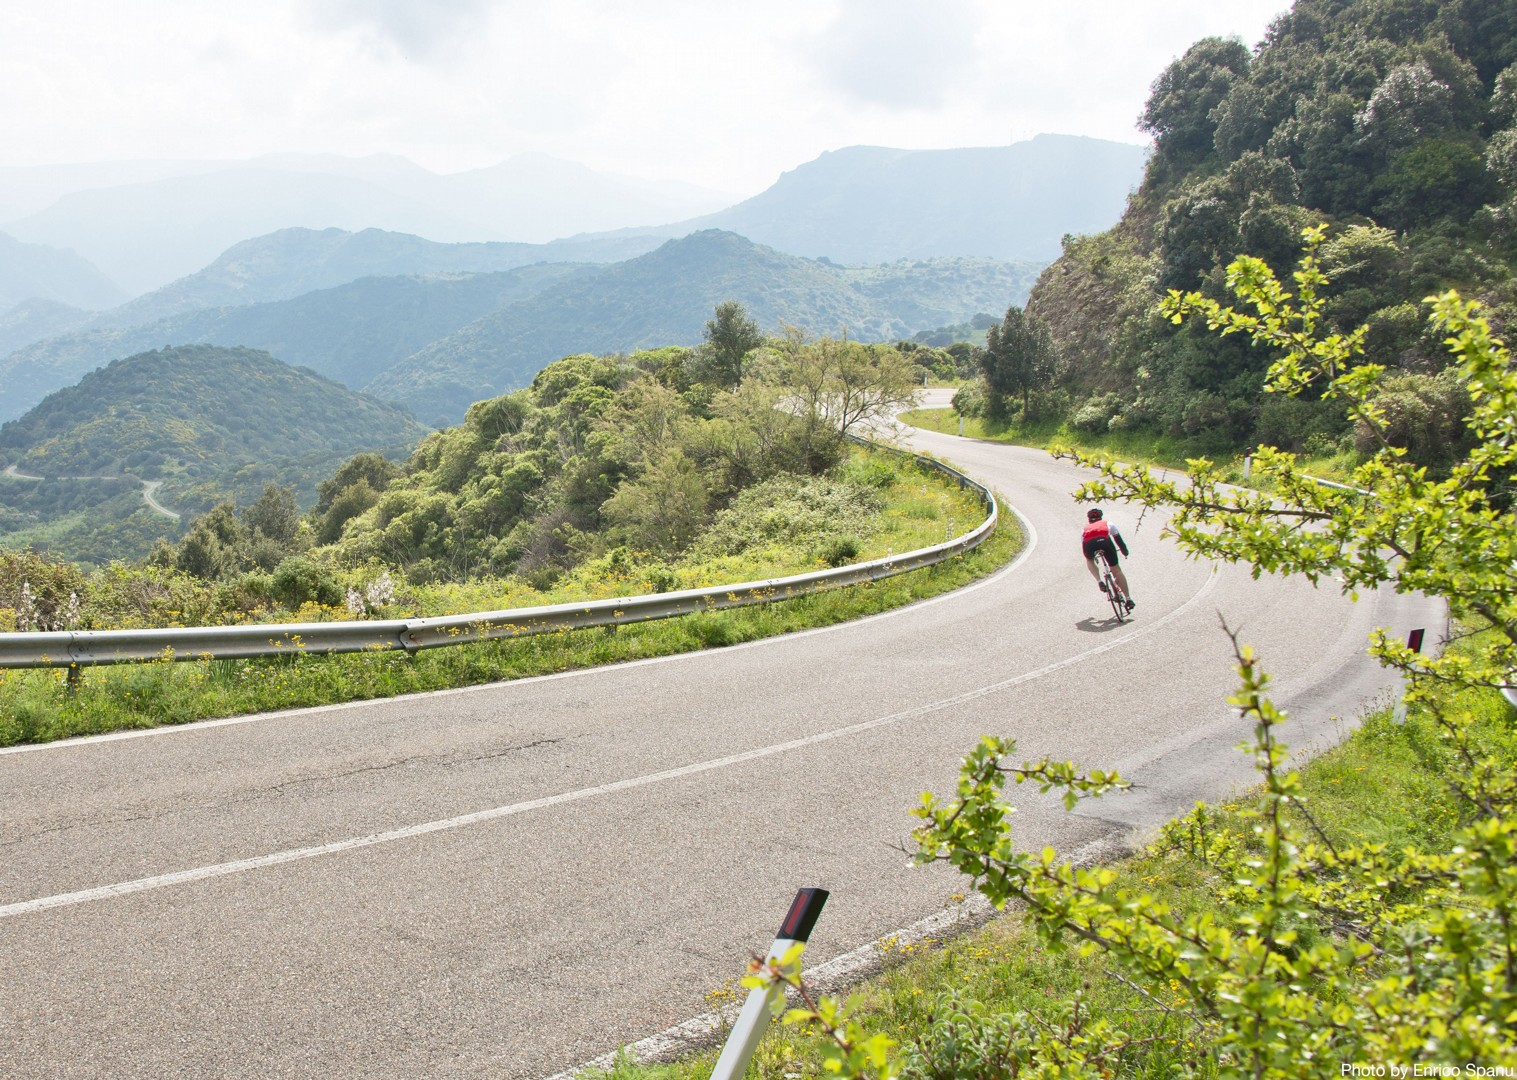 Road-Cycling-Holiday-Italy-Sardinia-Sardinian-Mountains.jpg - Italy - Sardinia - Mountain Explorer - Guided Road Cycling Holiday - Road Cycling